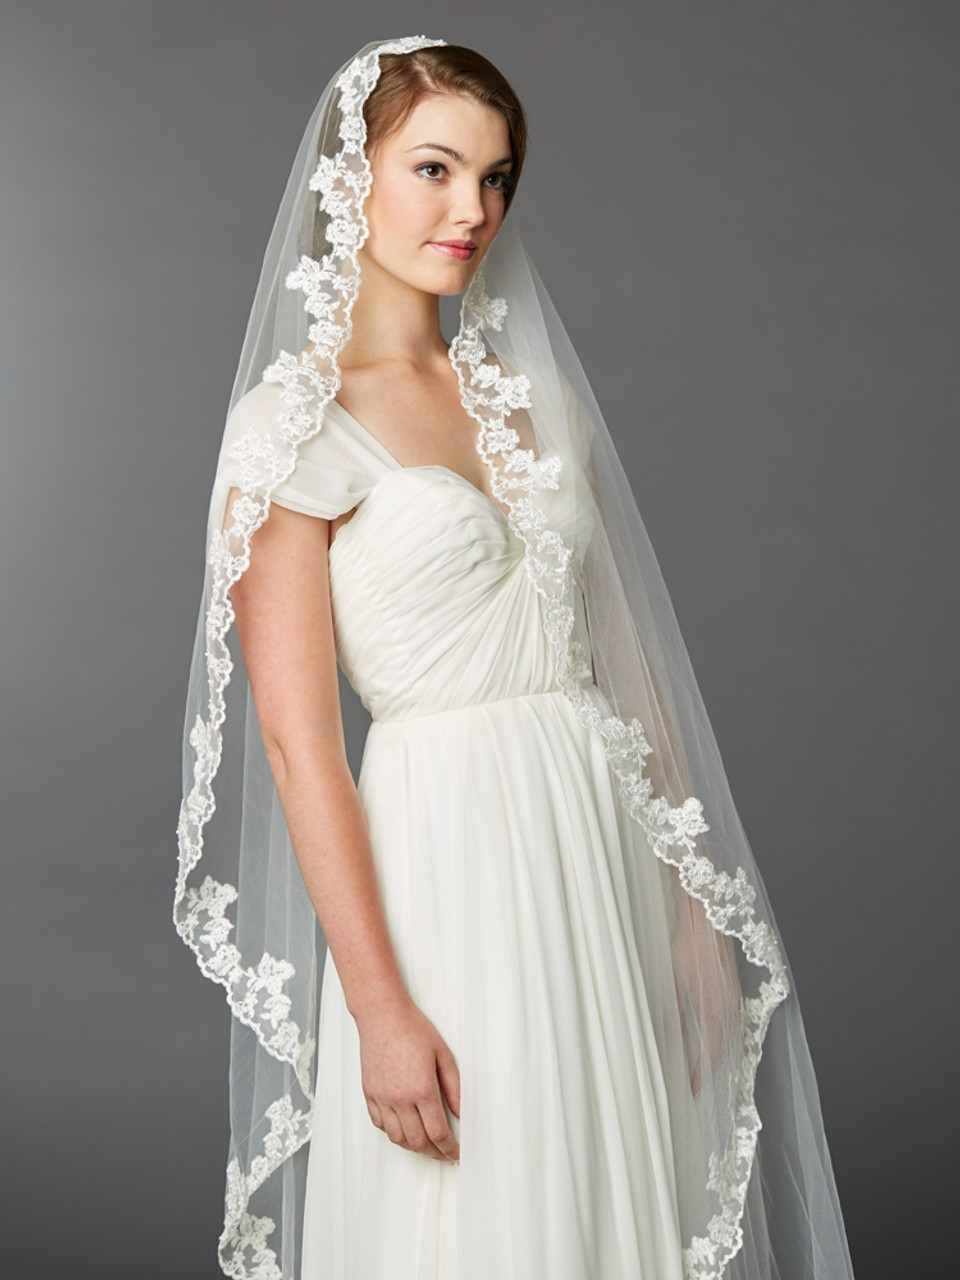 Classic Alencon lace style wedding veil bridal veil with exclusive lace edge design Cathedral veil with lace edge design with beaded lace